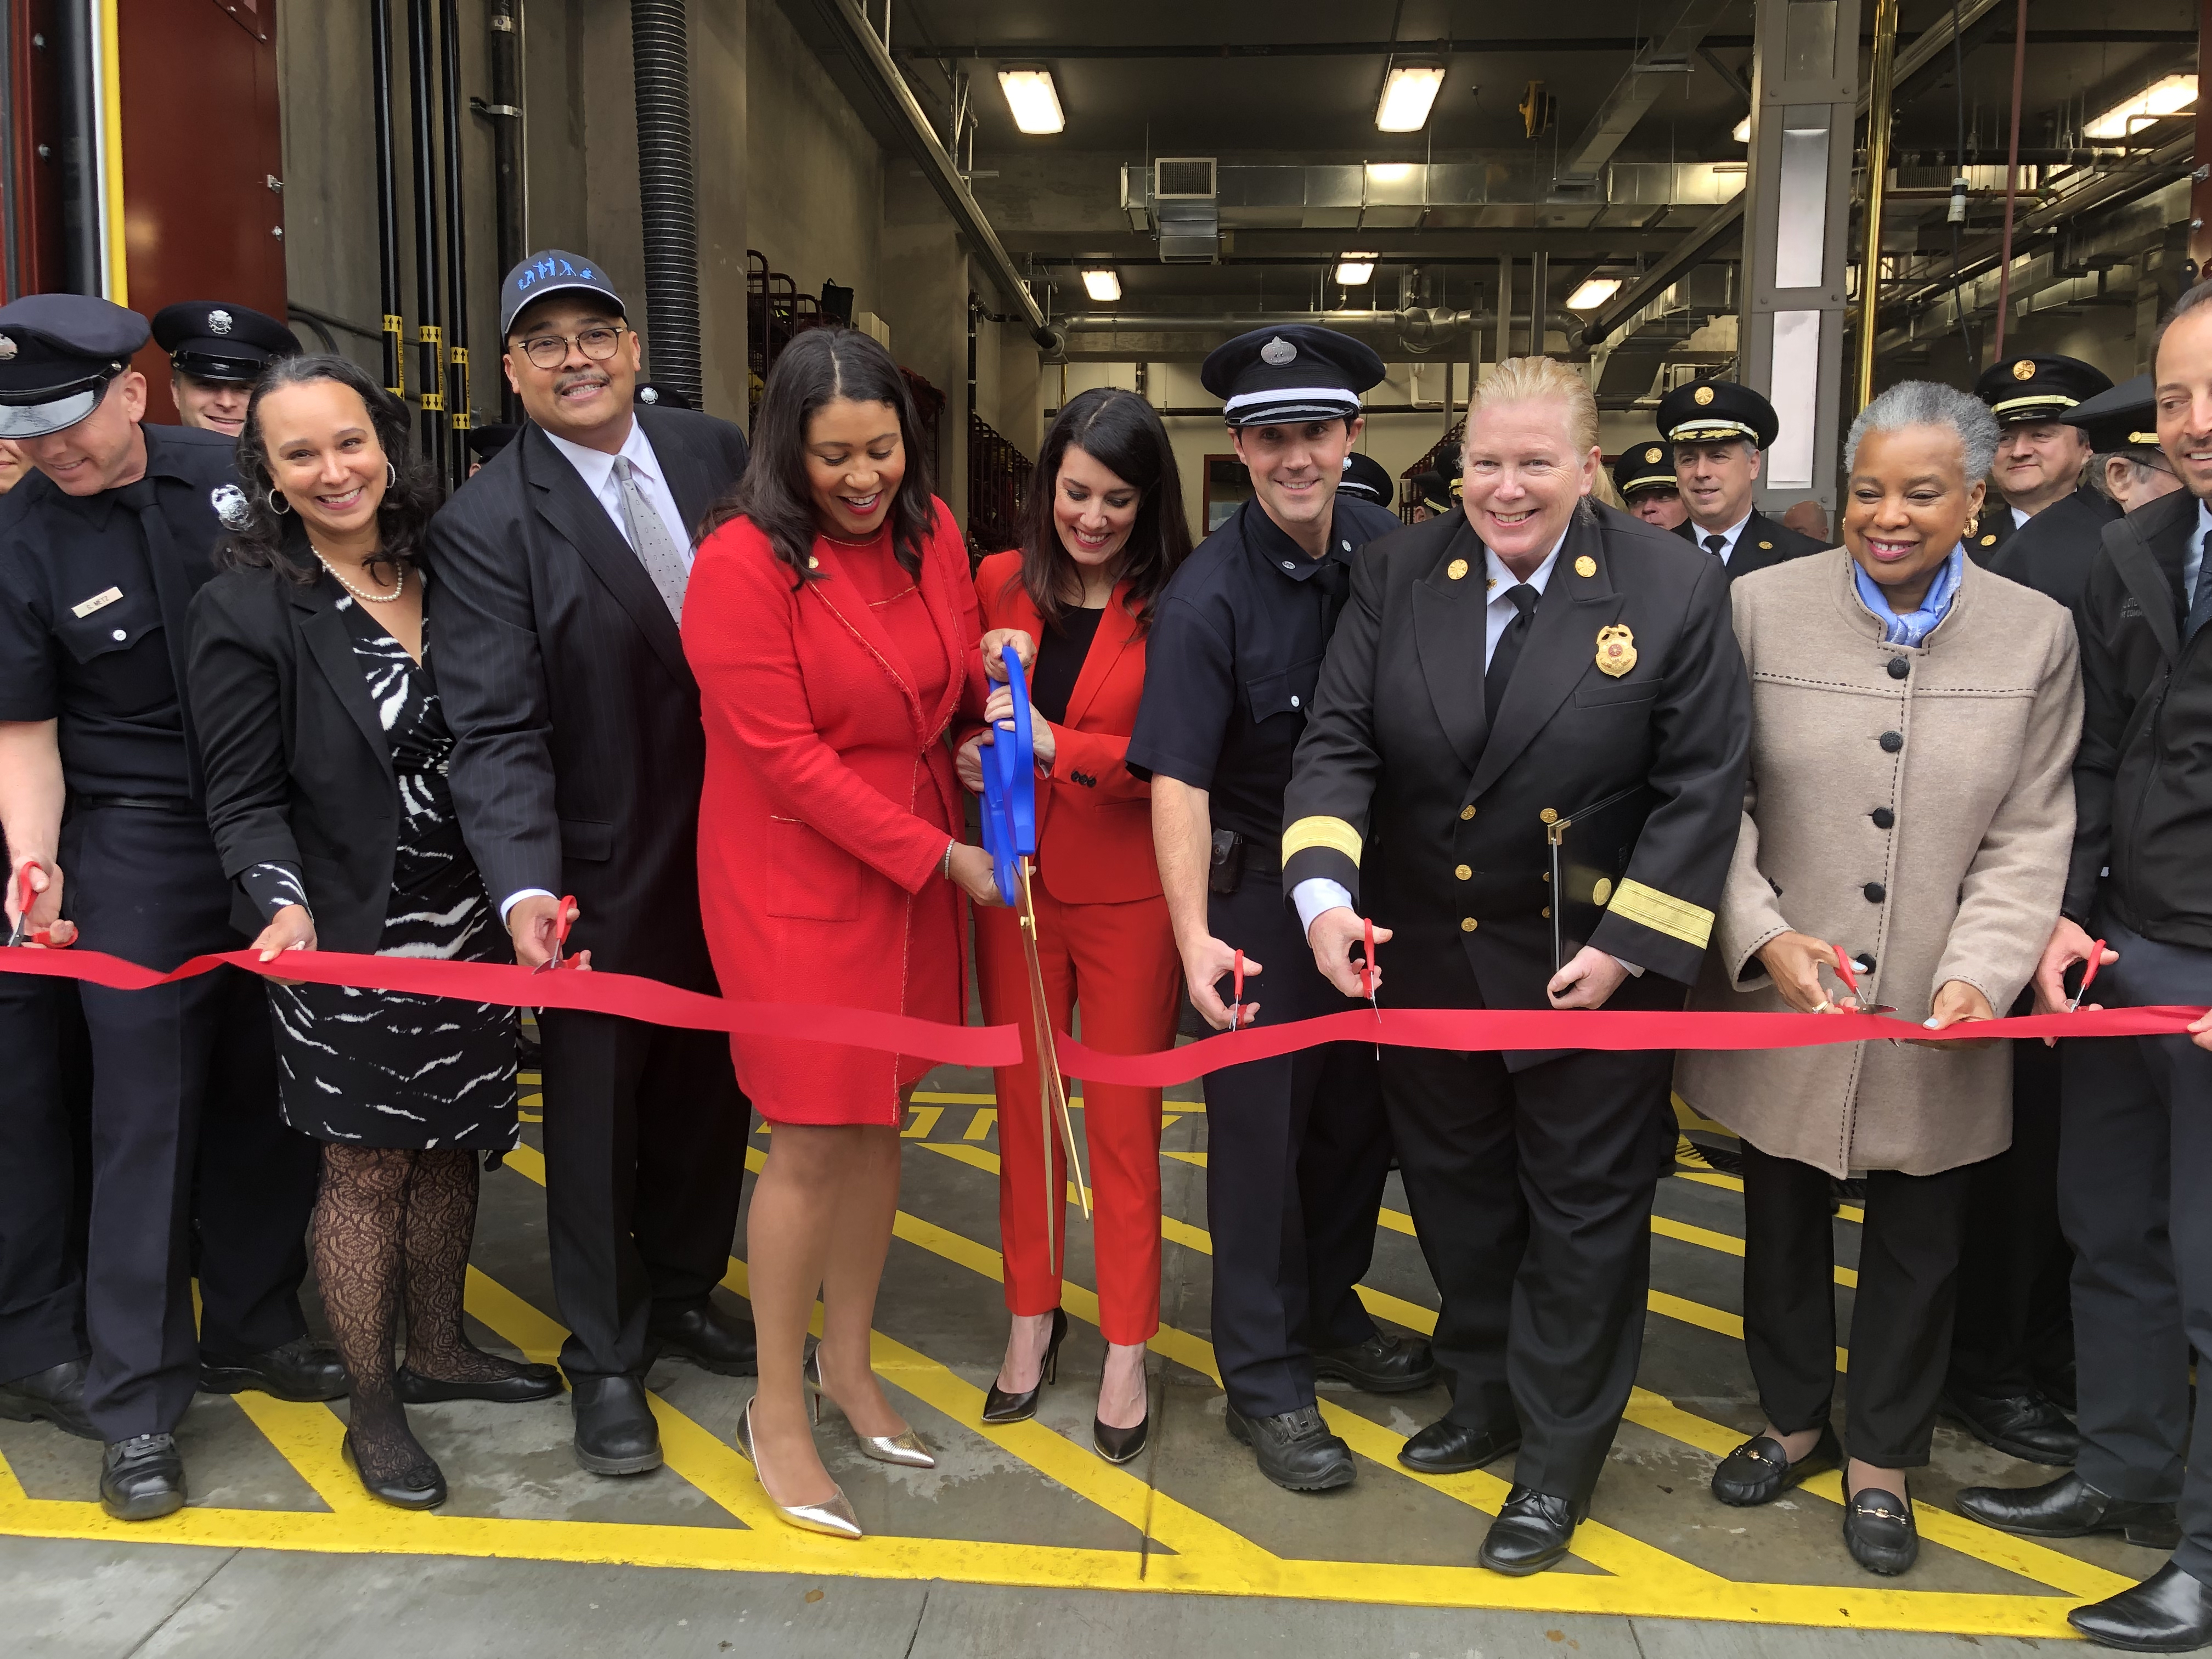 Mayor London Breed joins Supervisor Catherine Stefani and City Officials for the ribbon-cutting of newly retrofitted Fire Station No.16.